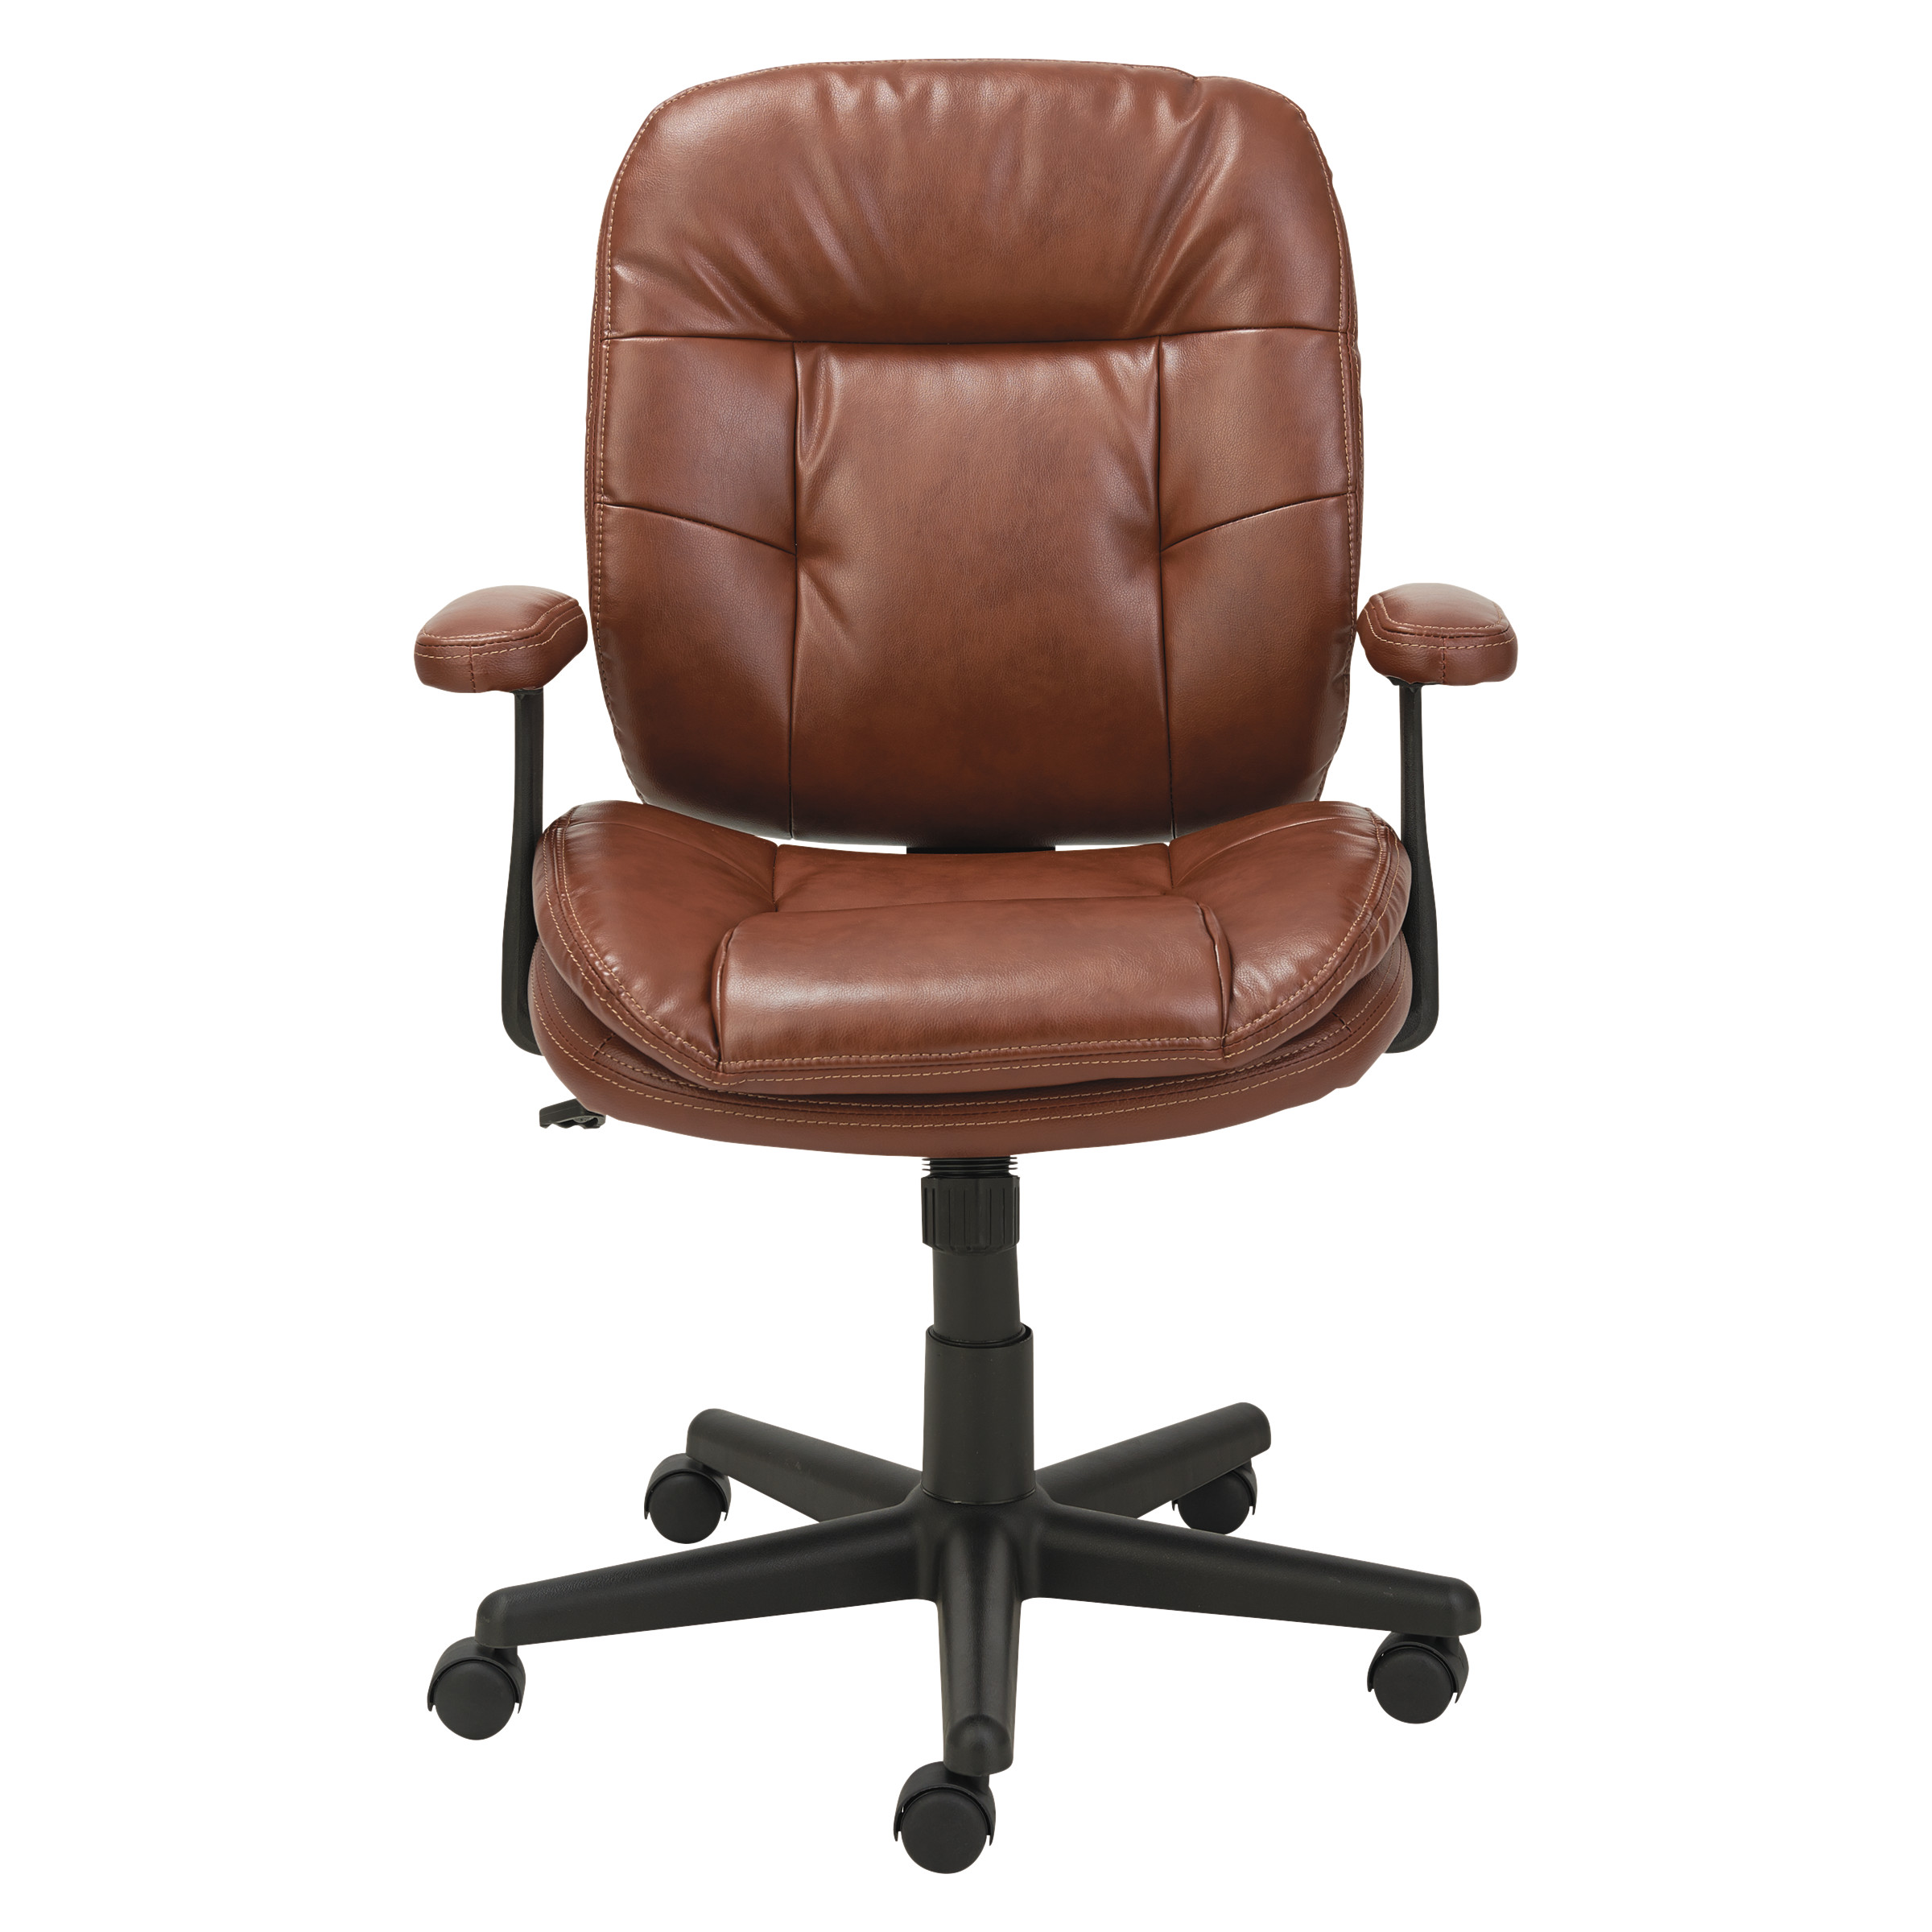 OIF Swivel/Tilt Leather Task Chair, Fixed T-Bar Arms, Chestnut Brown